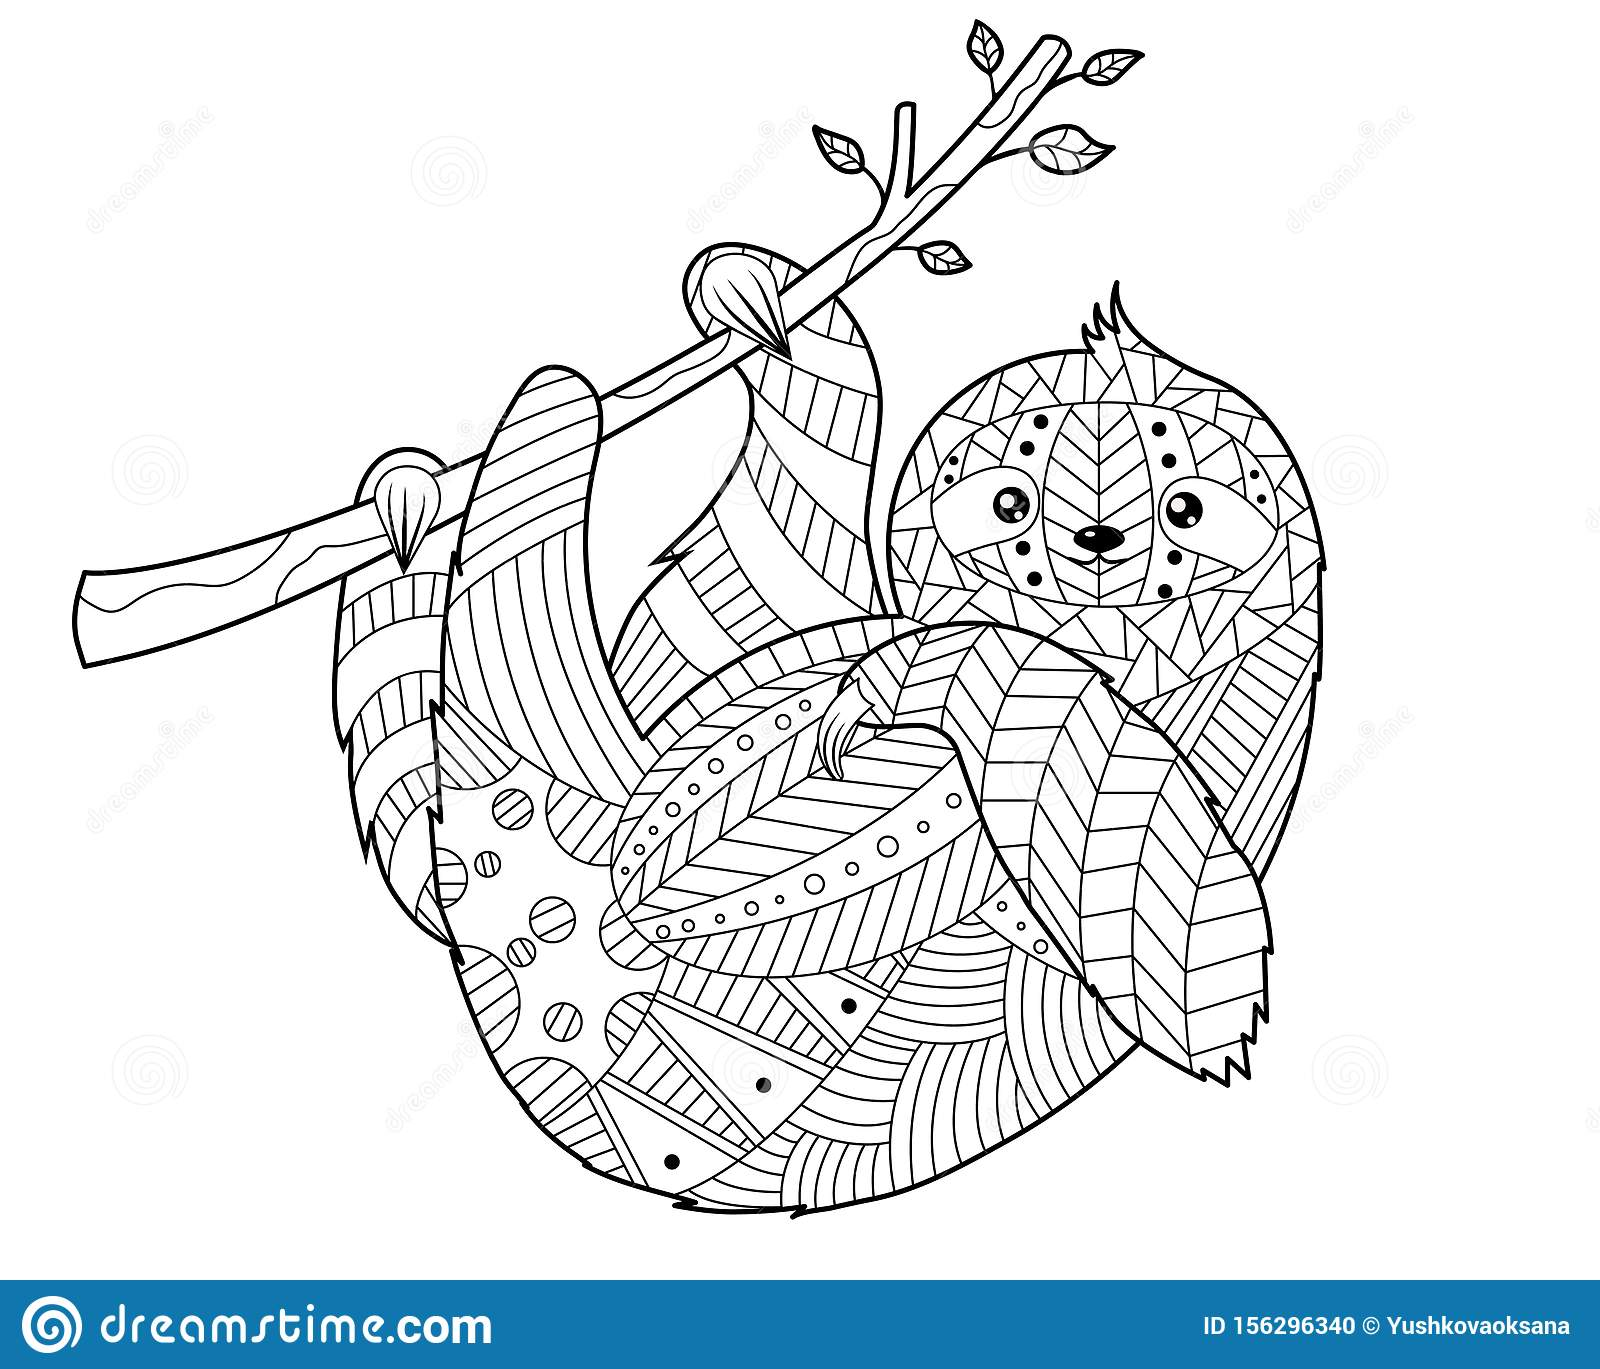 Coloring Book For Adults In The Style Of Doodling Sloth Stock Vector Illustration Of Coloring Exotic 156296340